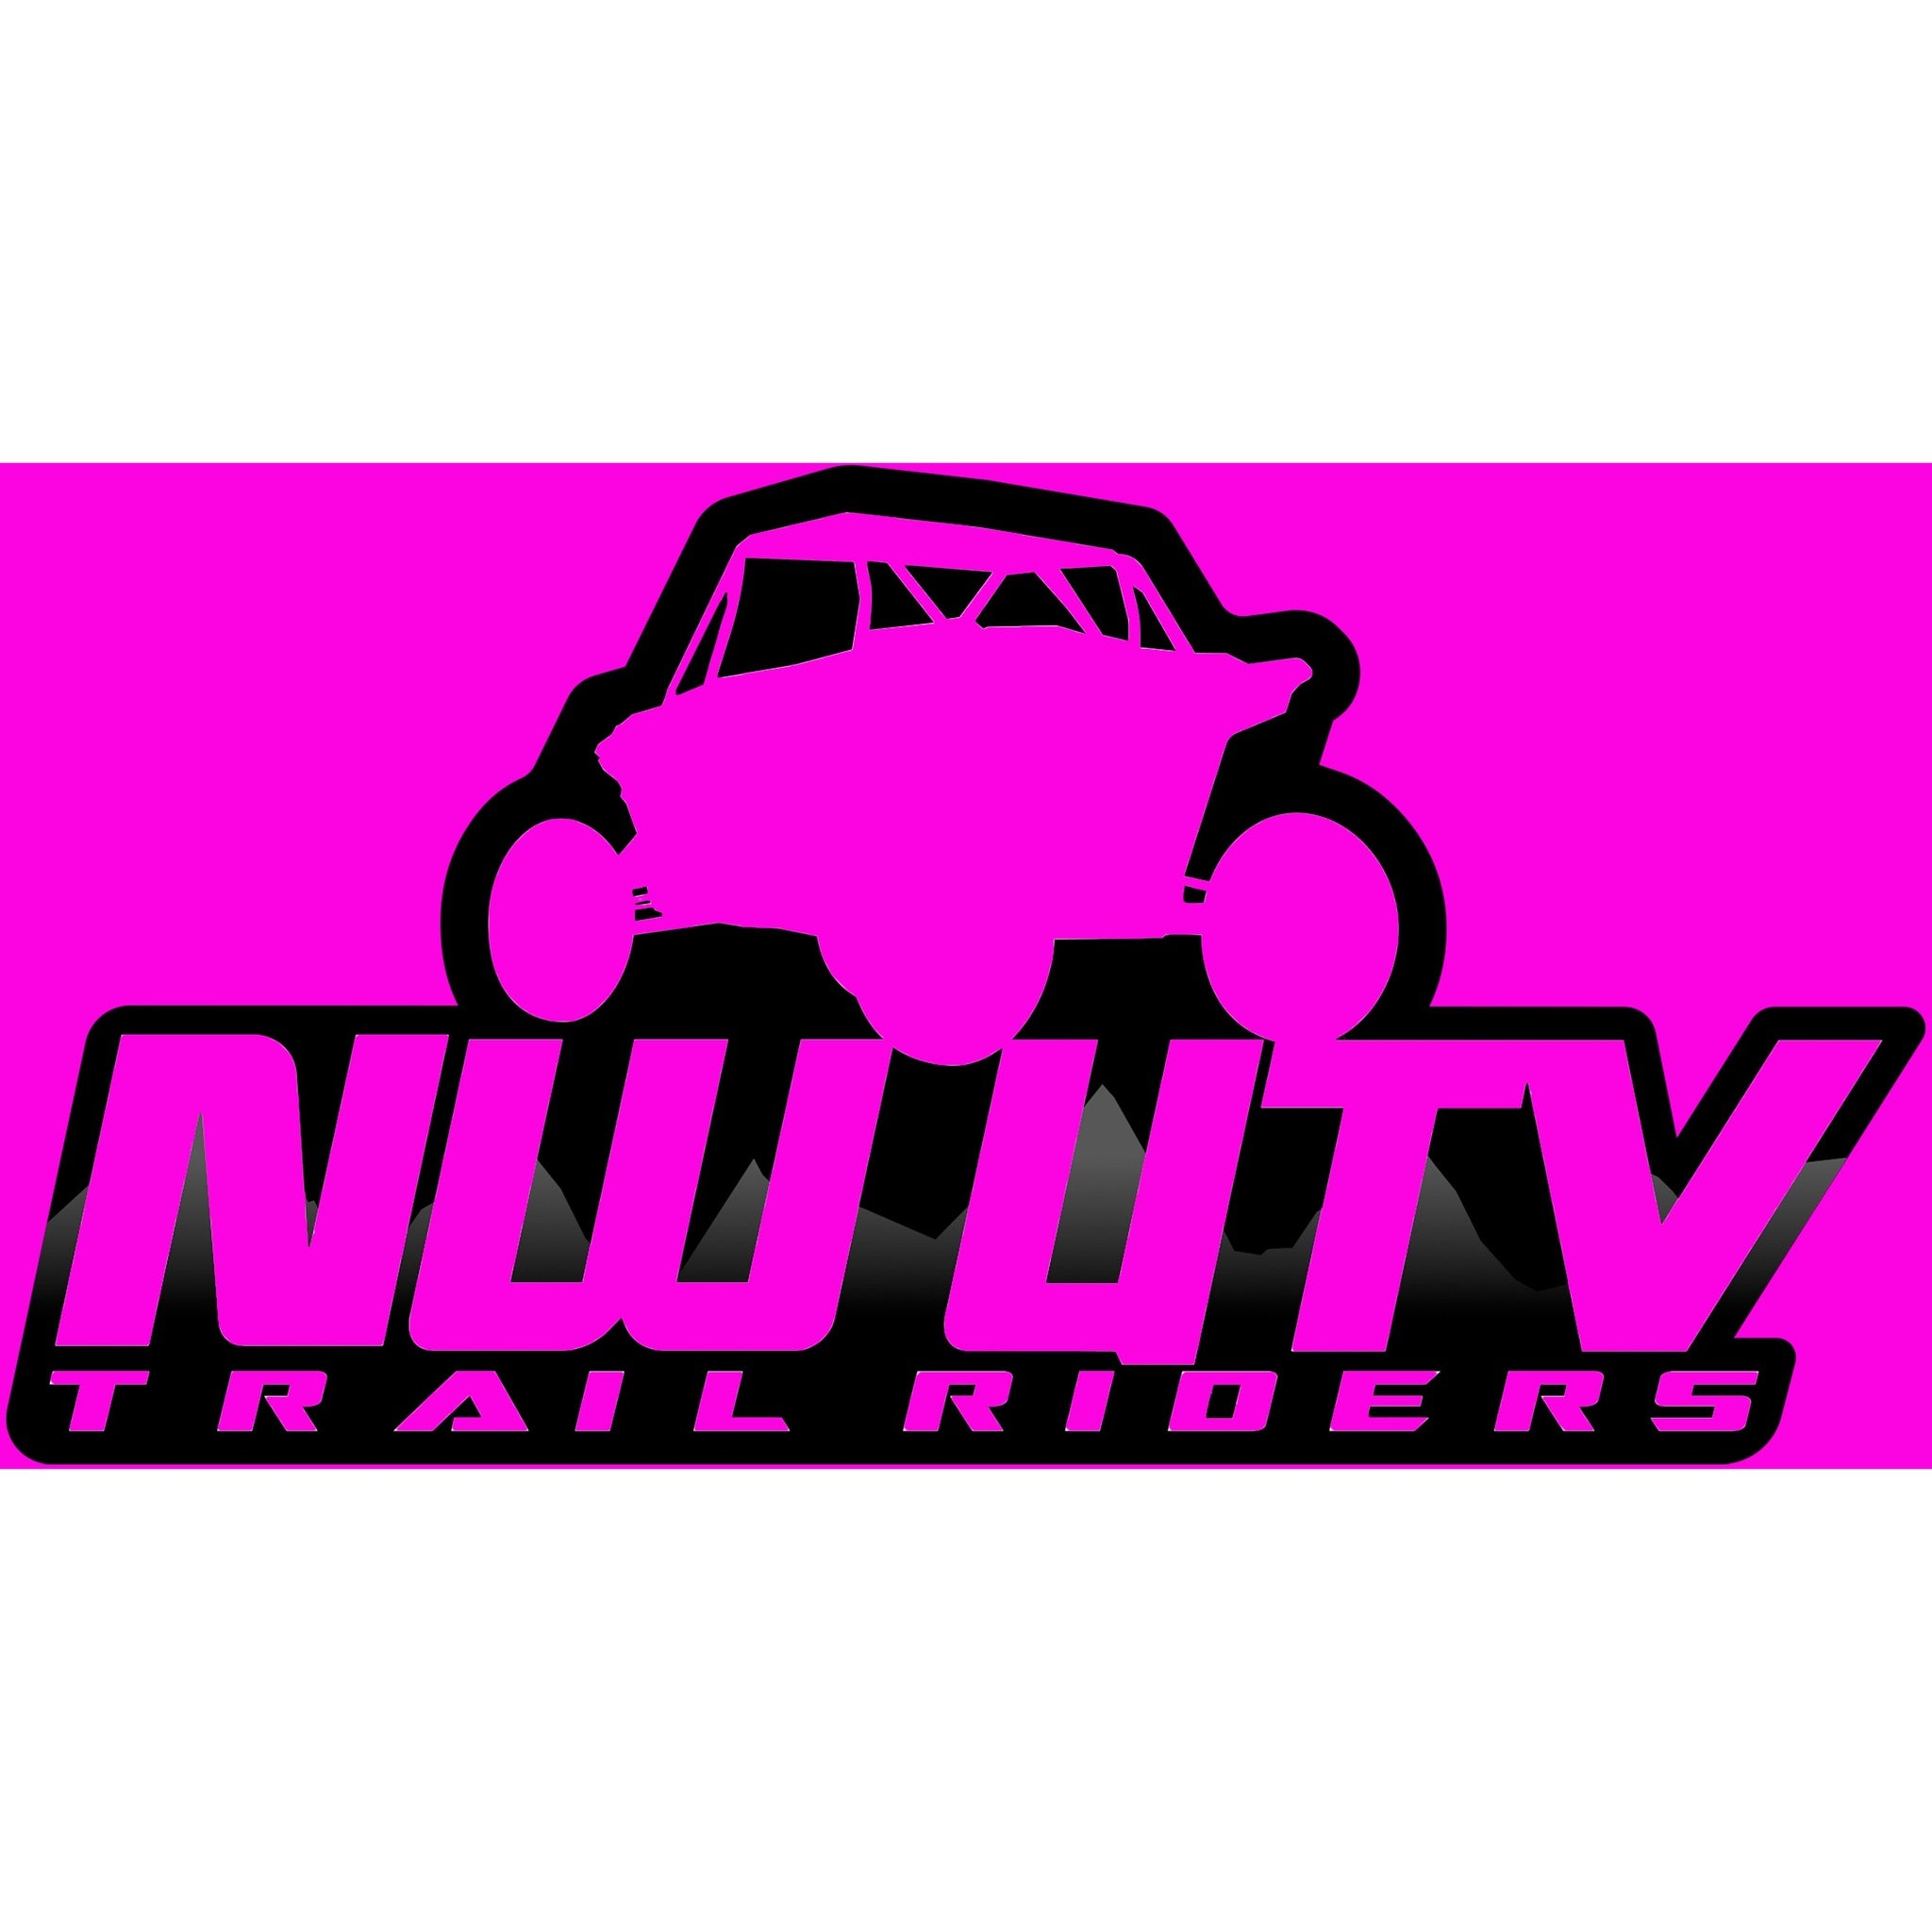 NW Trail Riders  (Pink)